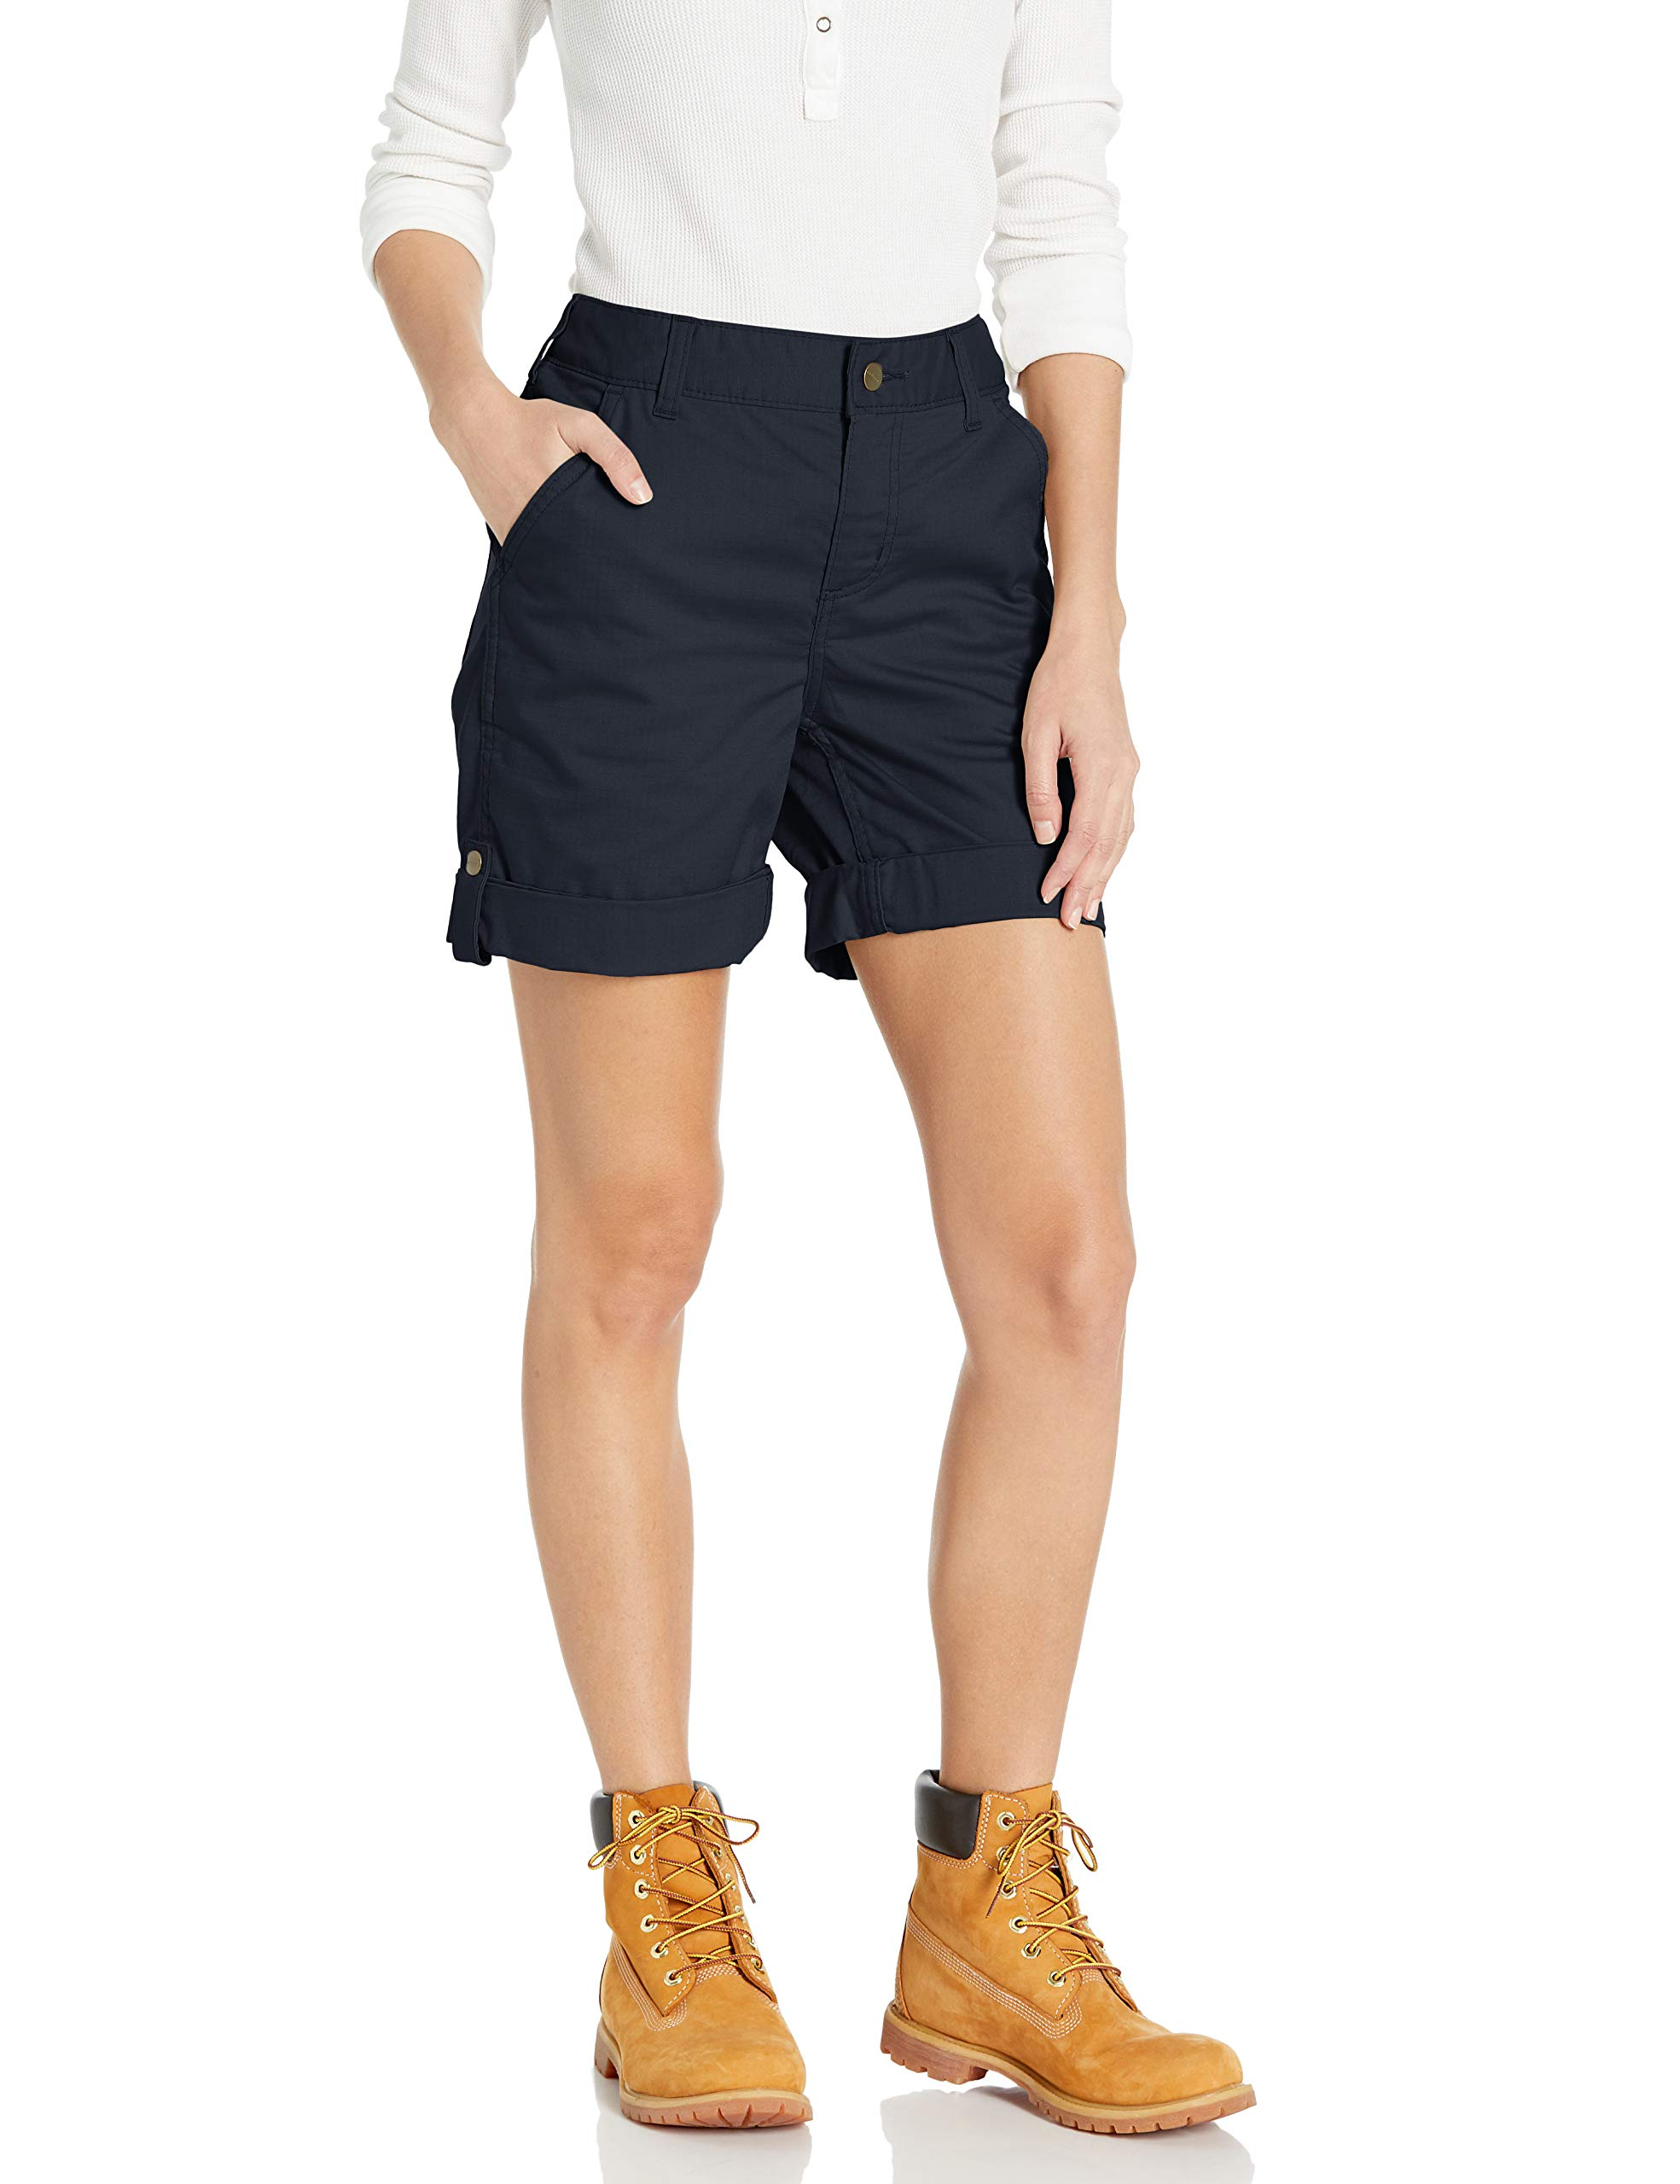 Carhartt Women's Original Fit Smithville Short